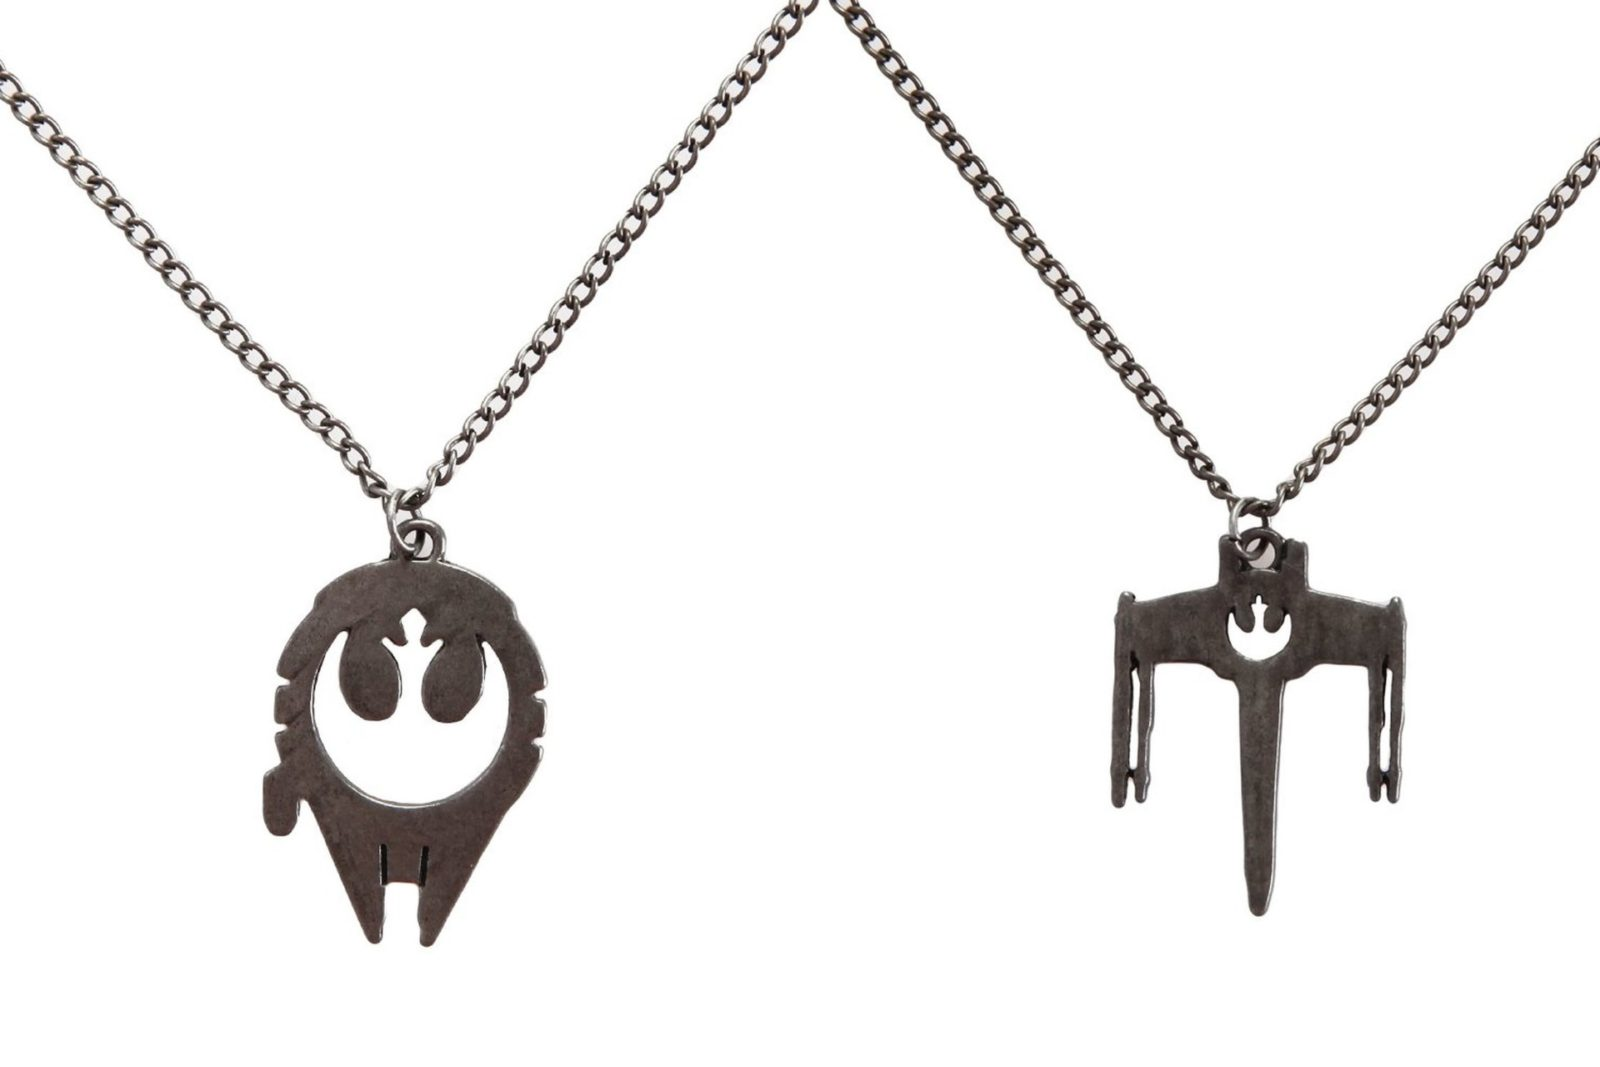 Rebel Alliance symbol cut-out necklaces